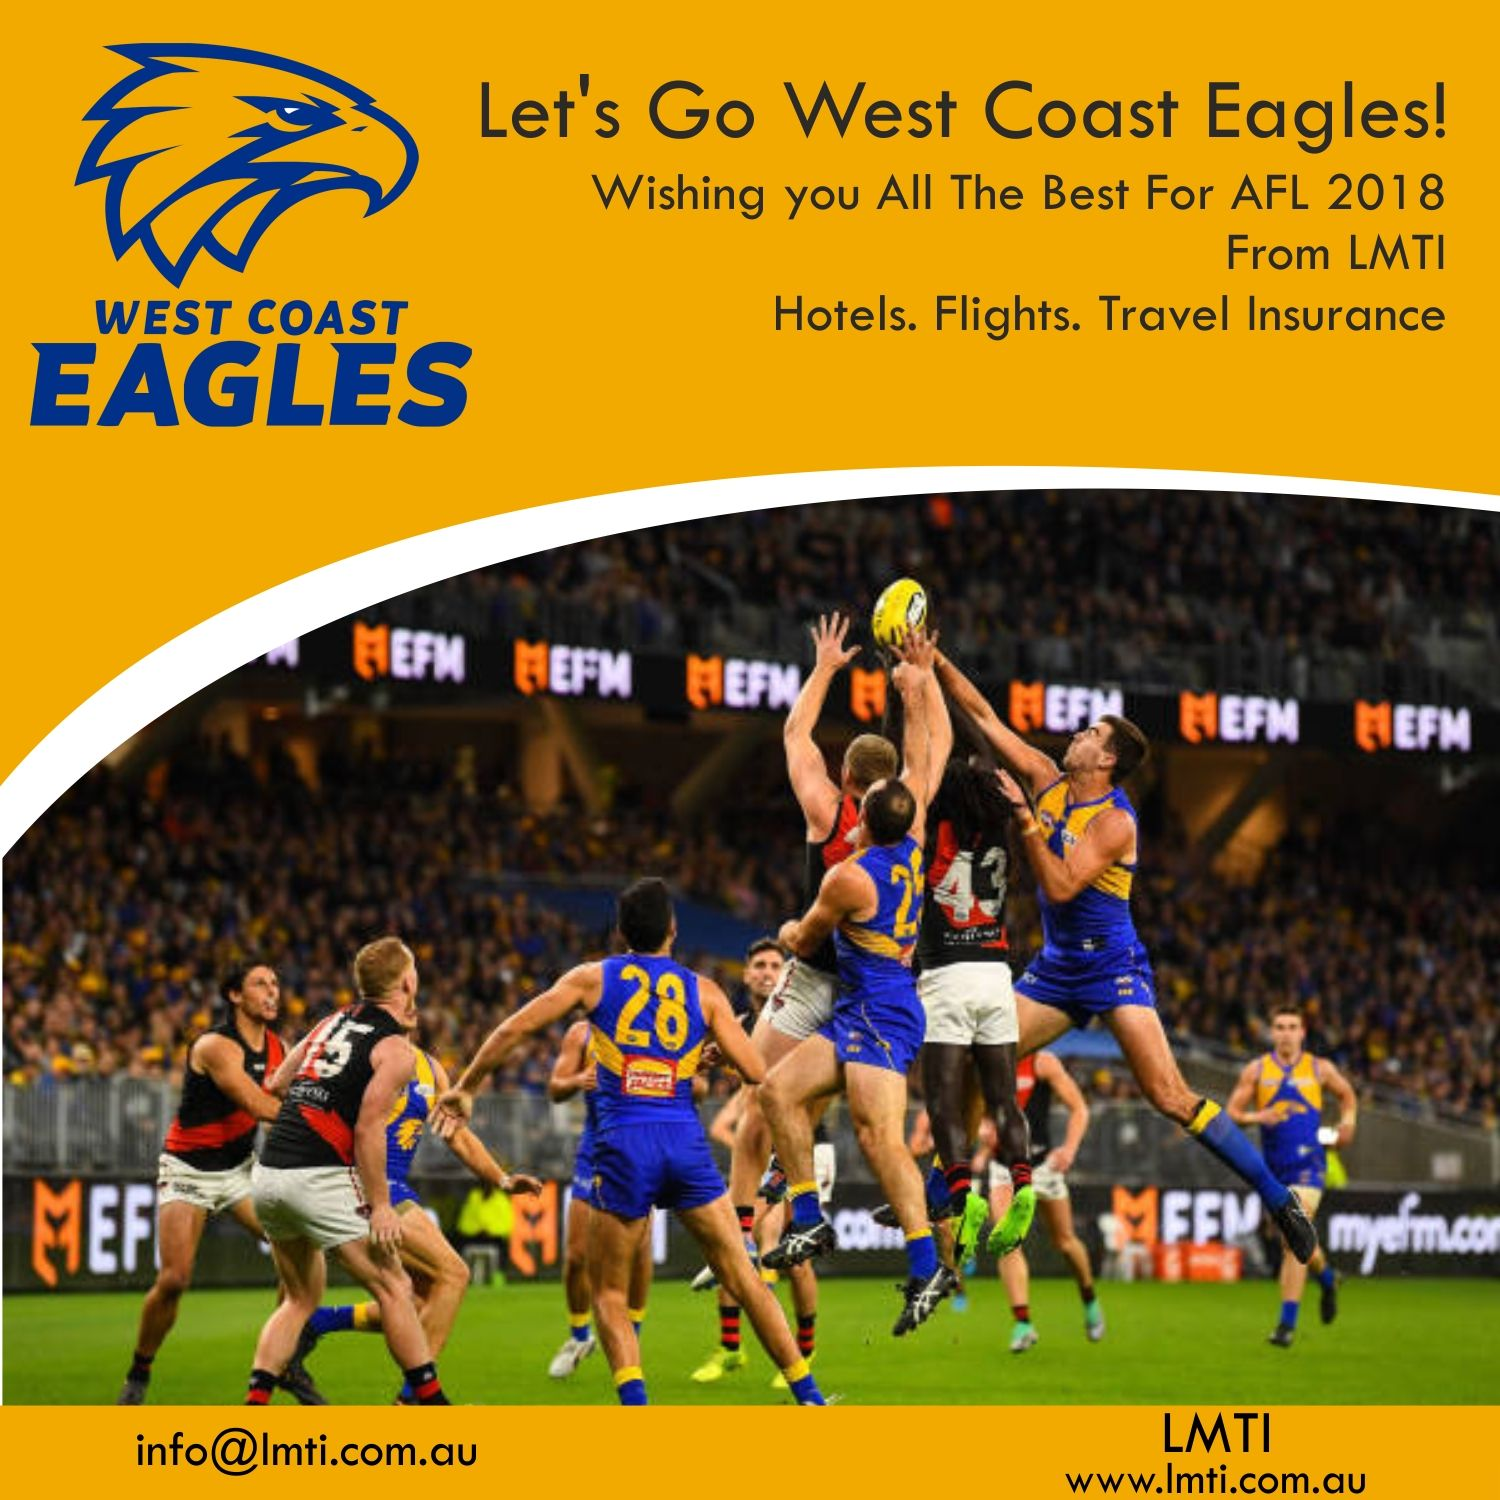 Let S Go West Coast Eagles Wishing You All The Best For Afl 2018 From Lmti Book Now Hotel Travel Insurance Travel Insurance Quotes Travel Insurance Companies